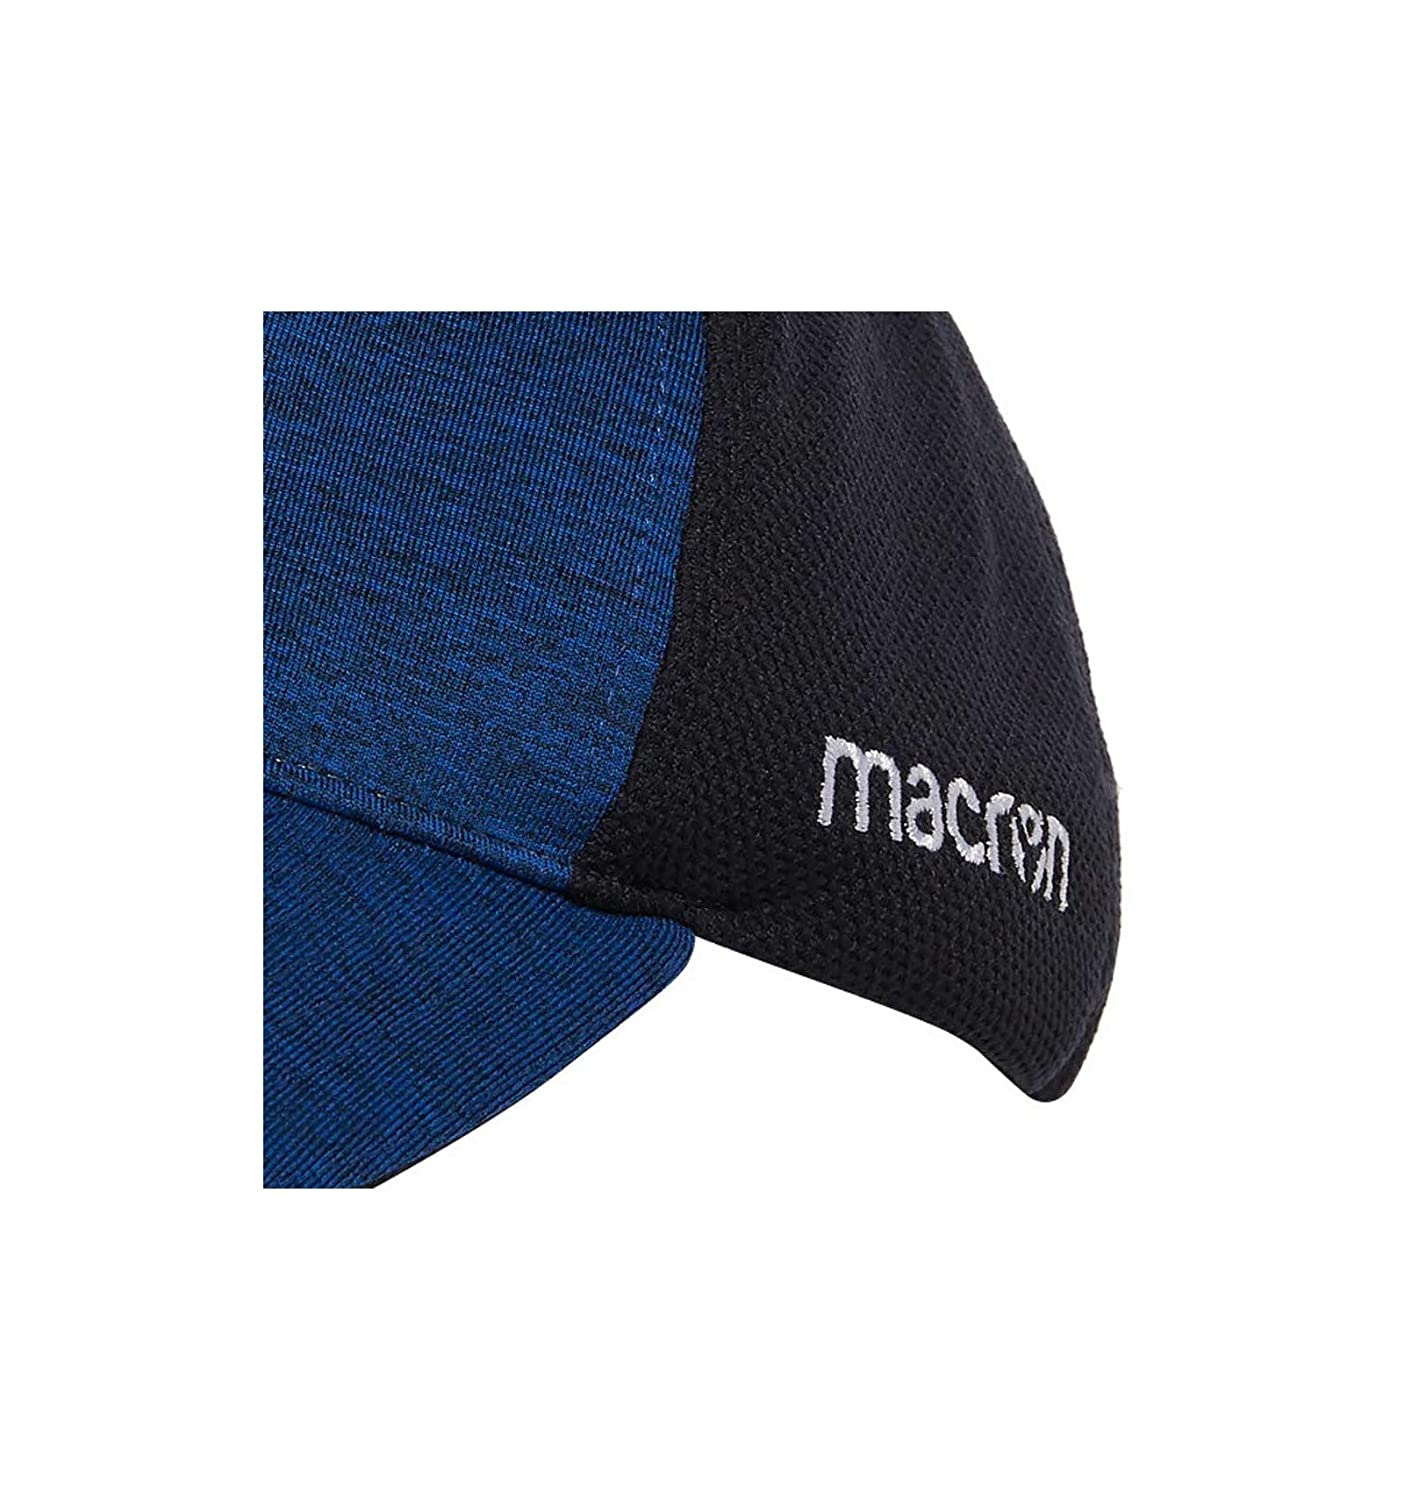 Macron Italy 2018/19 Players Rugby Baseball Cap Accessories Baseball